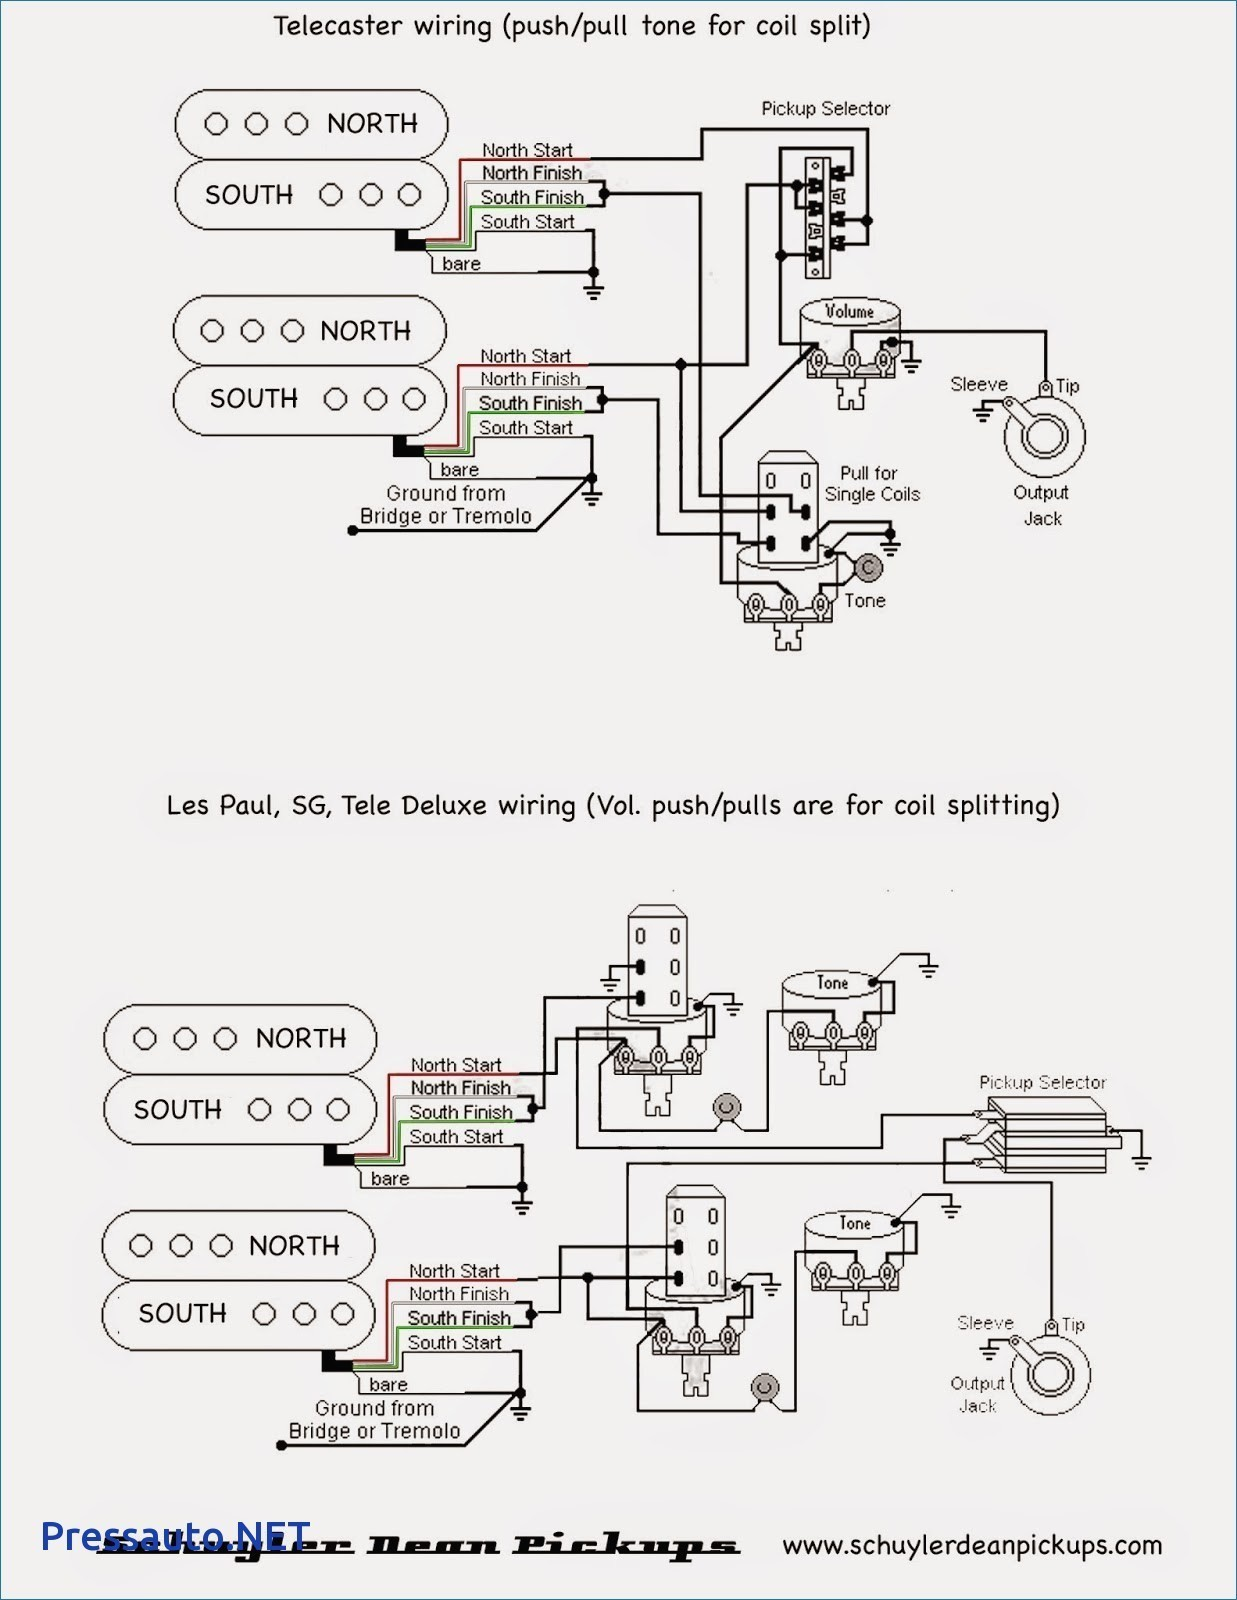 gretsch wiring diagram wiring diagram image gretsch schematics gretsch  guitar wiring diagram refrence wiring diagram guitar